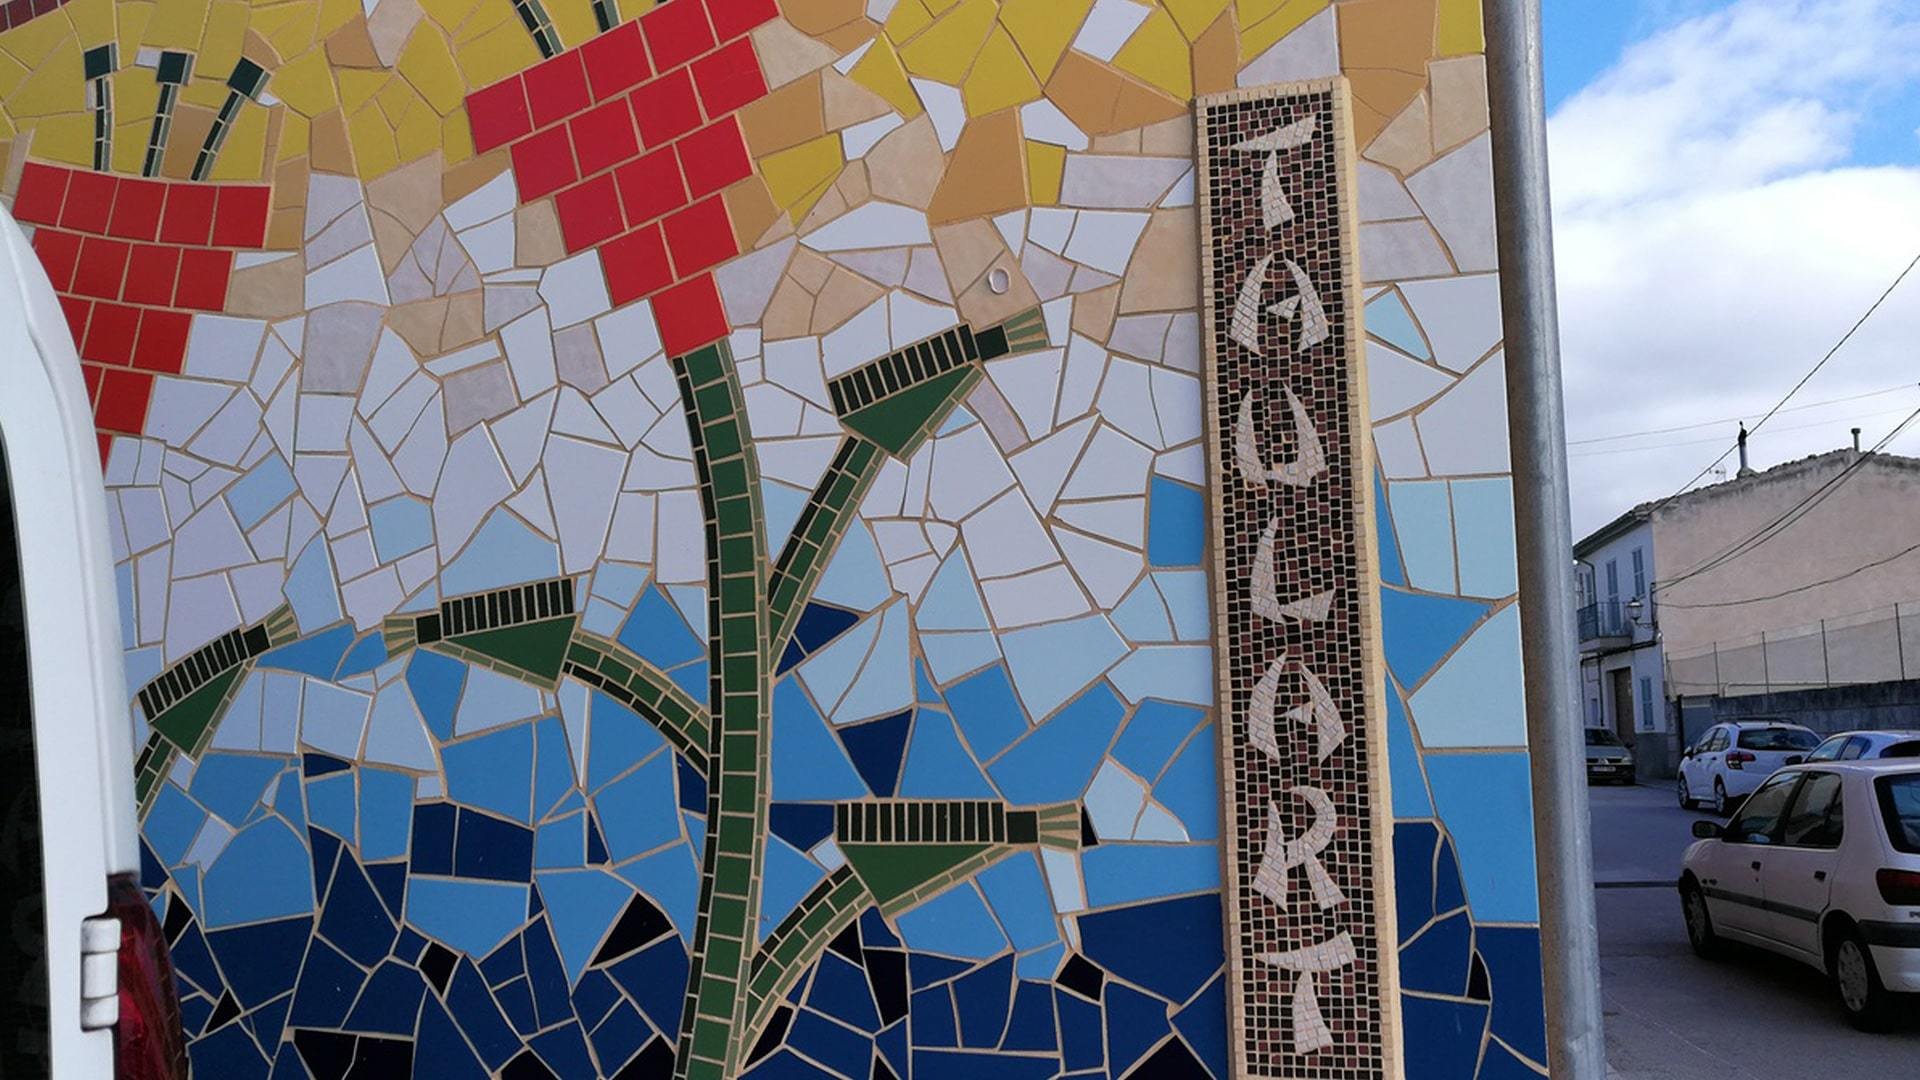 Taulart mosaic Montuiri by Holly Veneman min